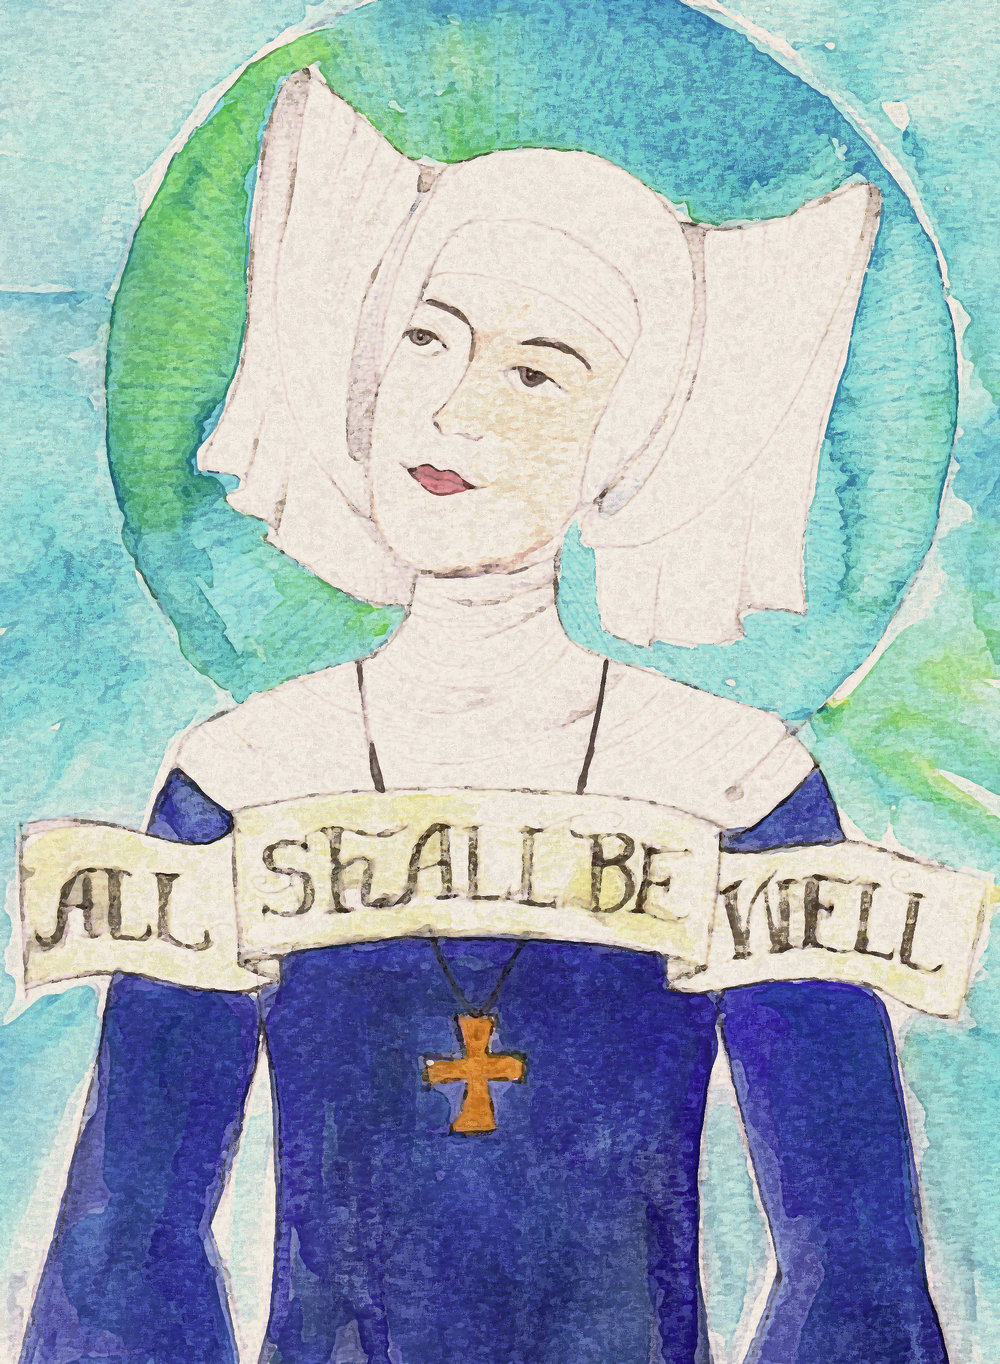 Julian of Norwich is well known for her phrase: All shall be well.